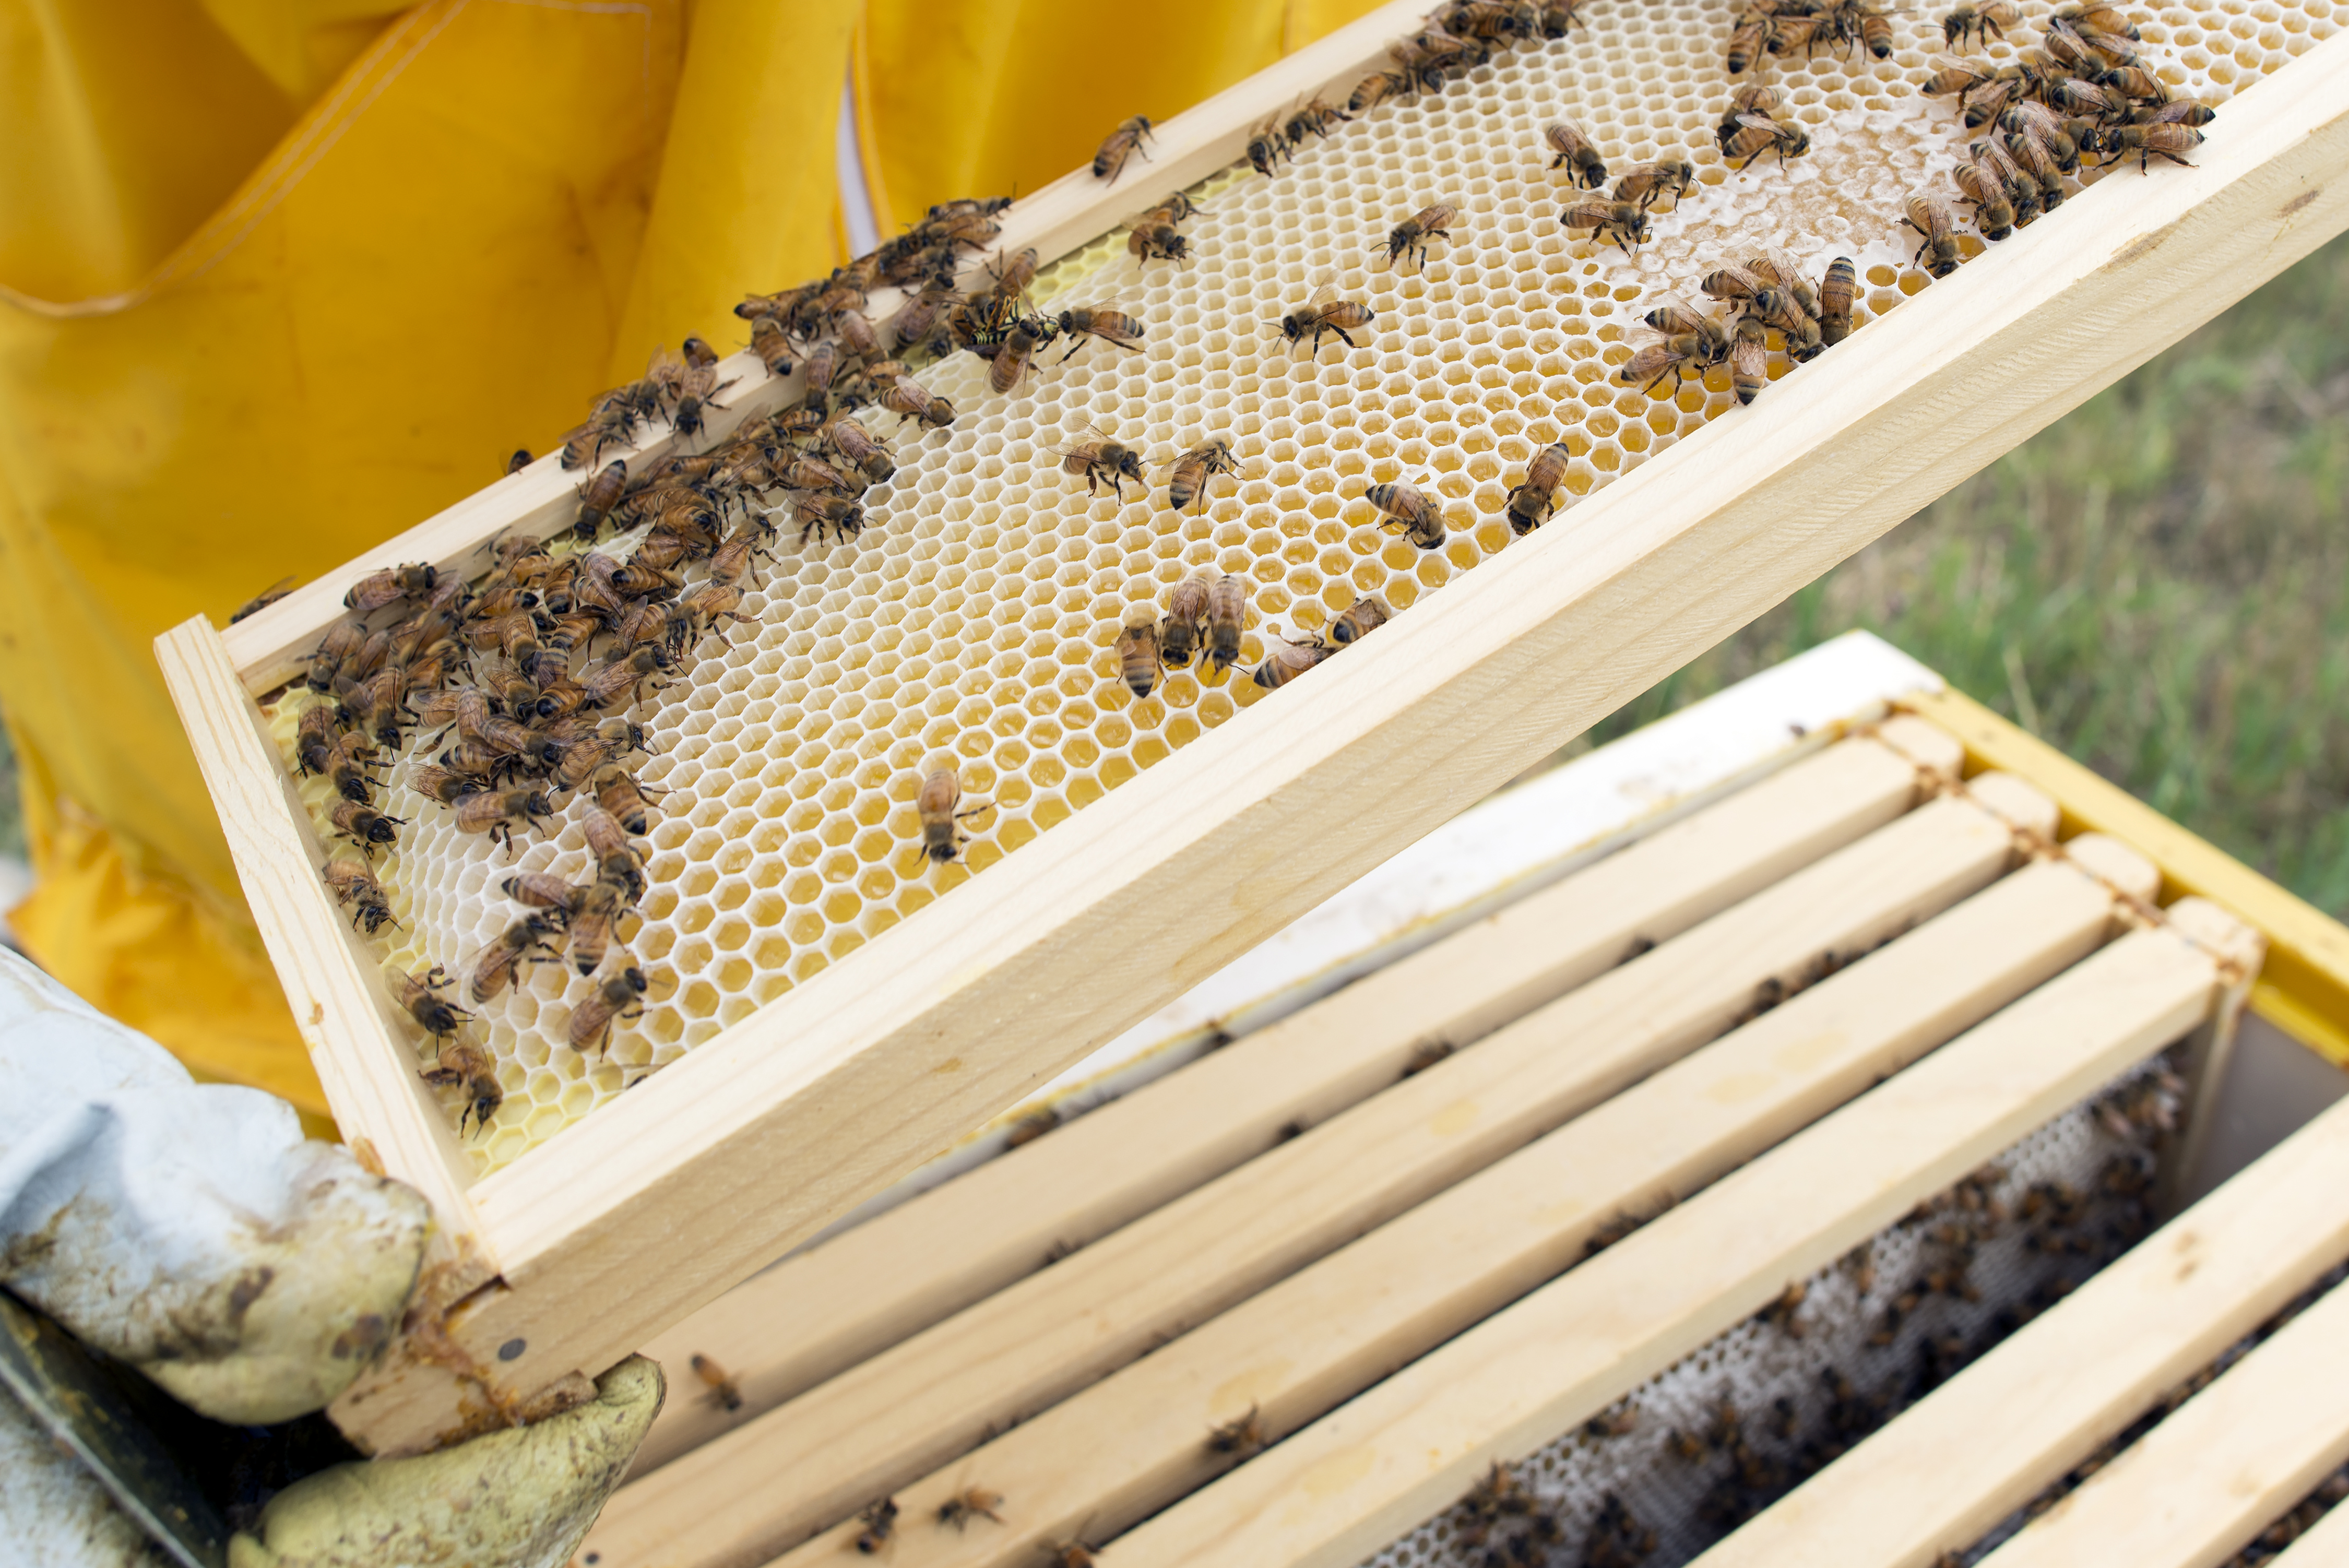 The Internet Of Bees Adding Sensors To Monitor Hive Health Make Beehive Wiring Board If A Honey Bee Worker Weighs 120mg And Growth Was Entirely In That Would Be Equivalent 1900 Day